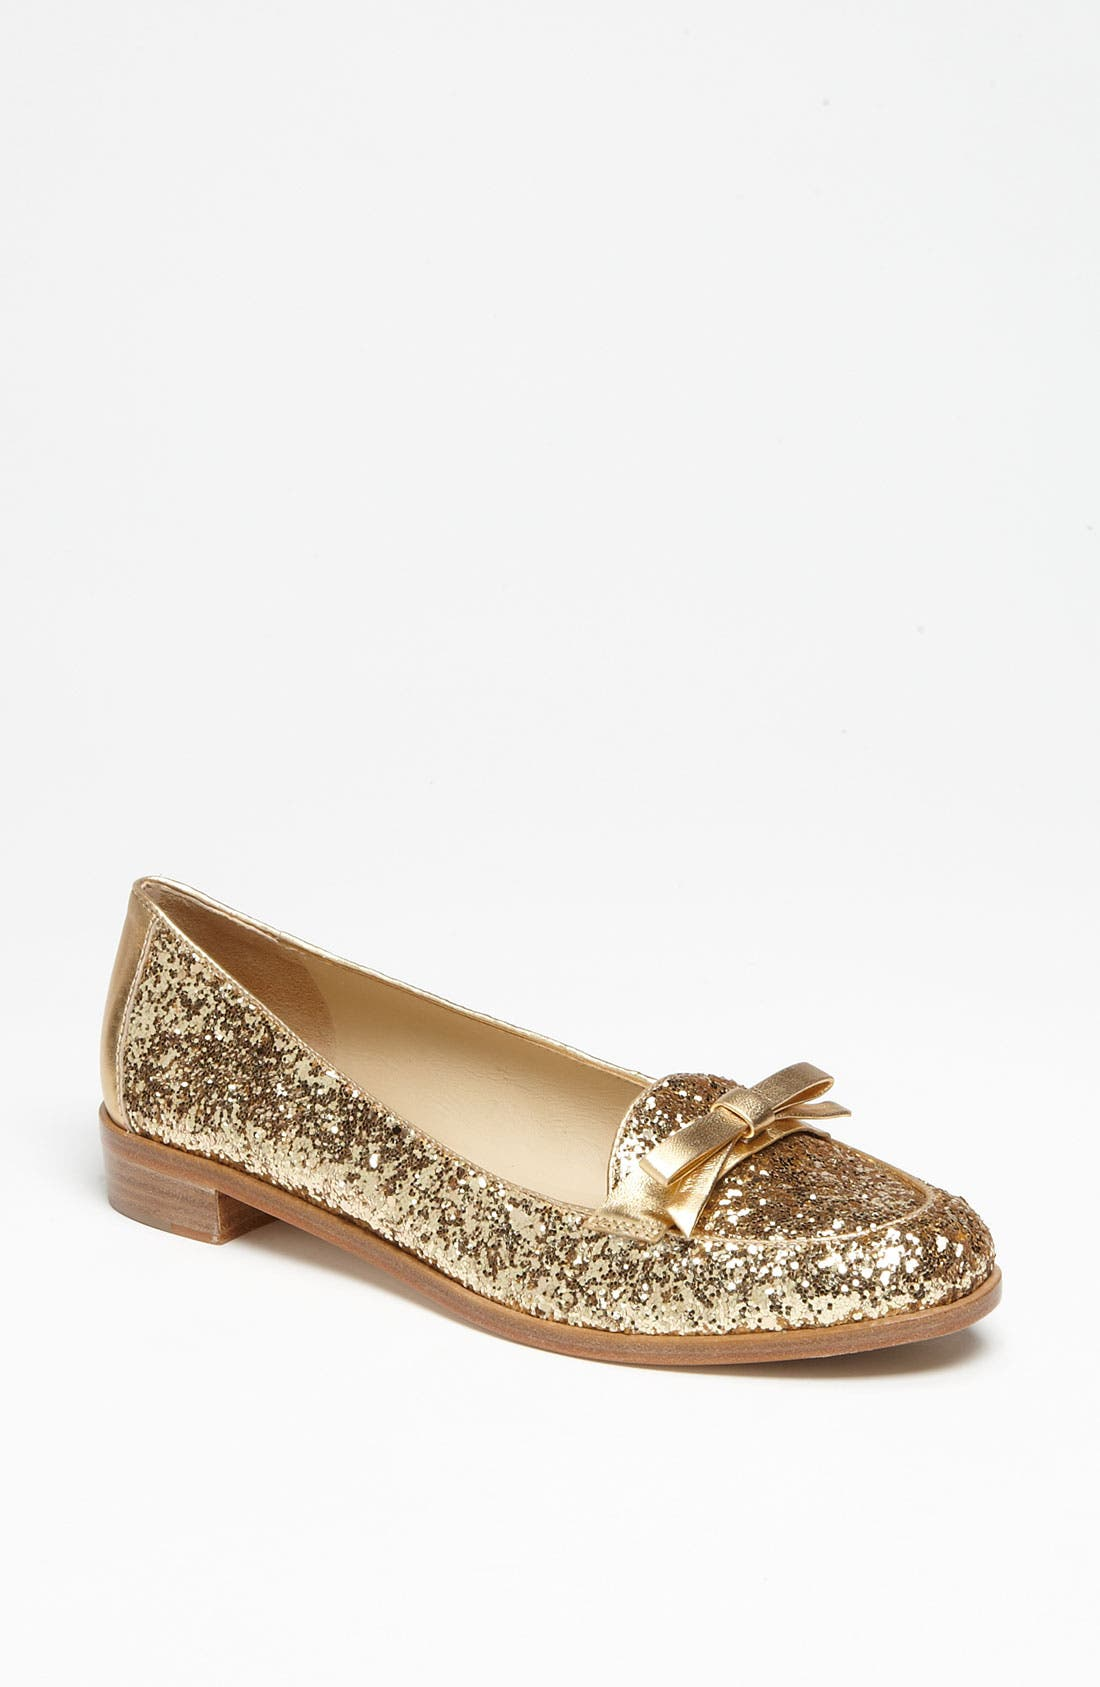 Main Image - kate spade new york 'cora' flat